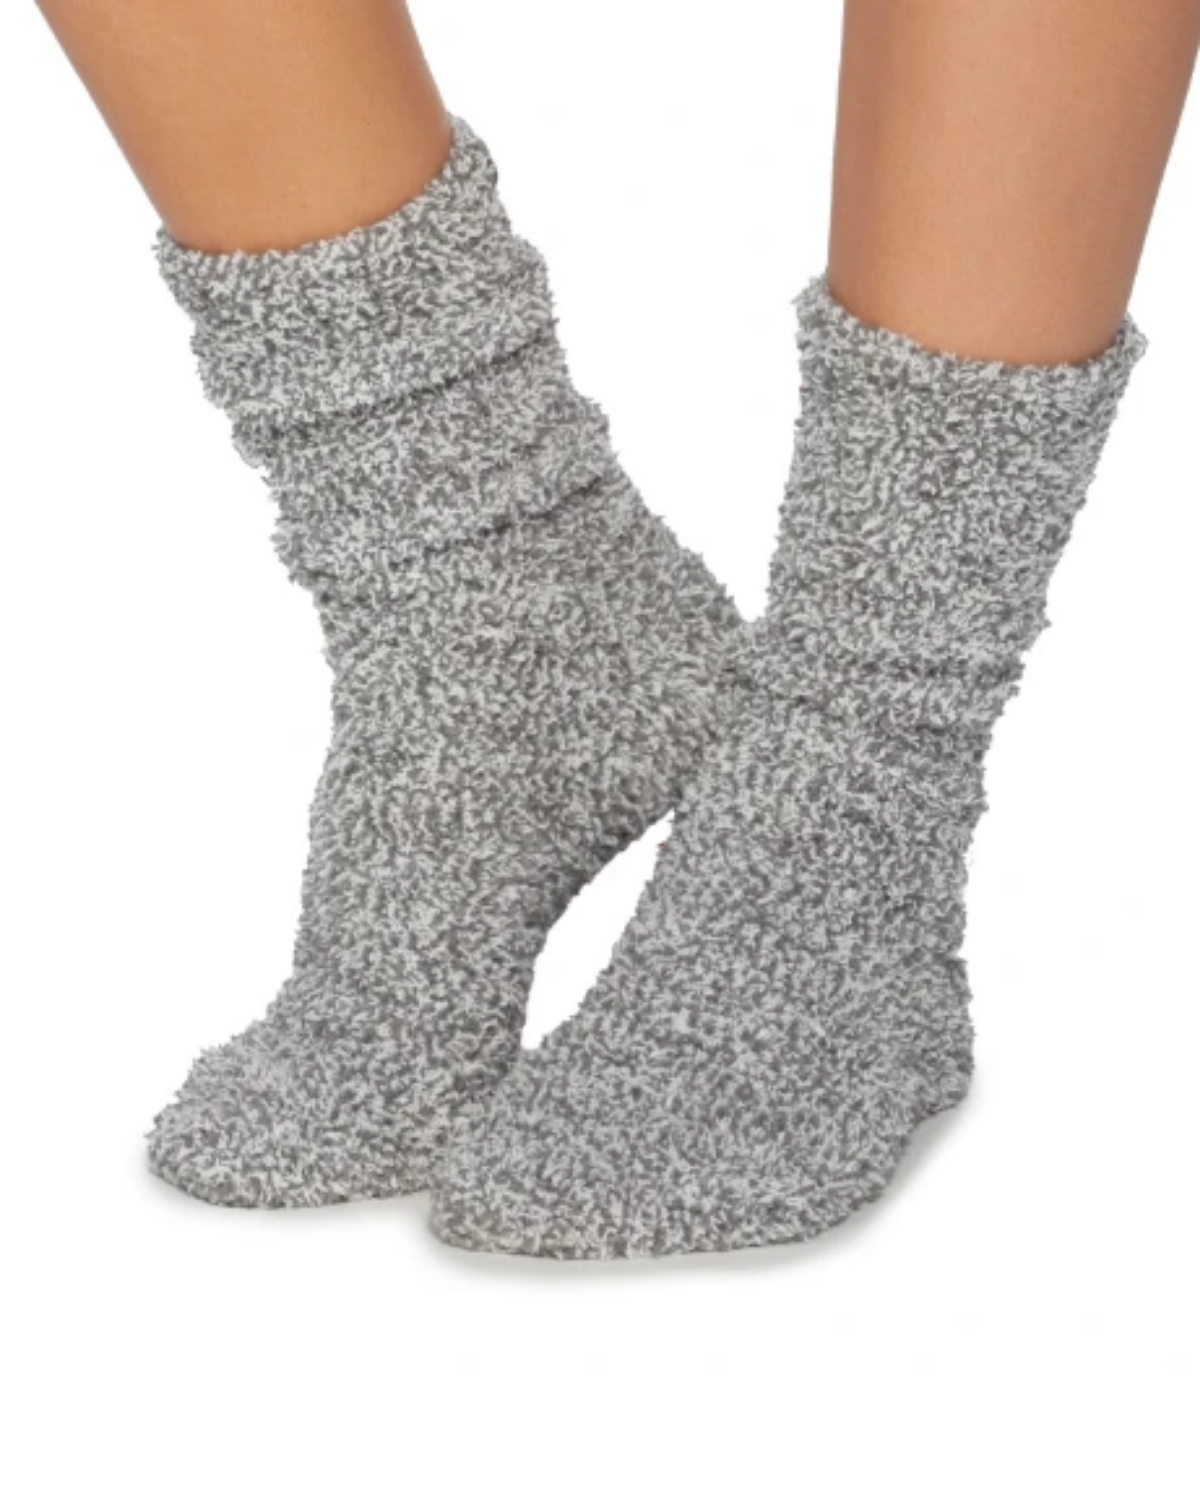 CozyChic Socks - Heathered Graphite